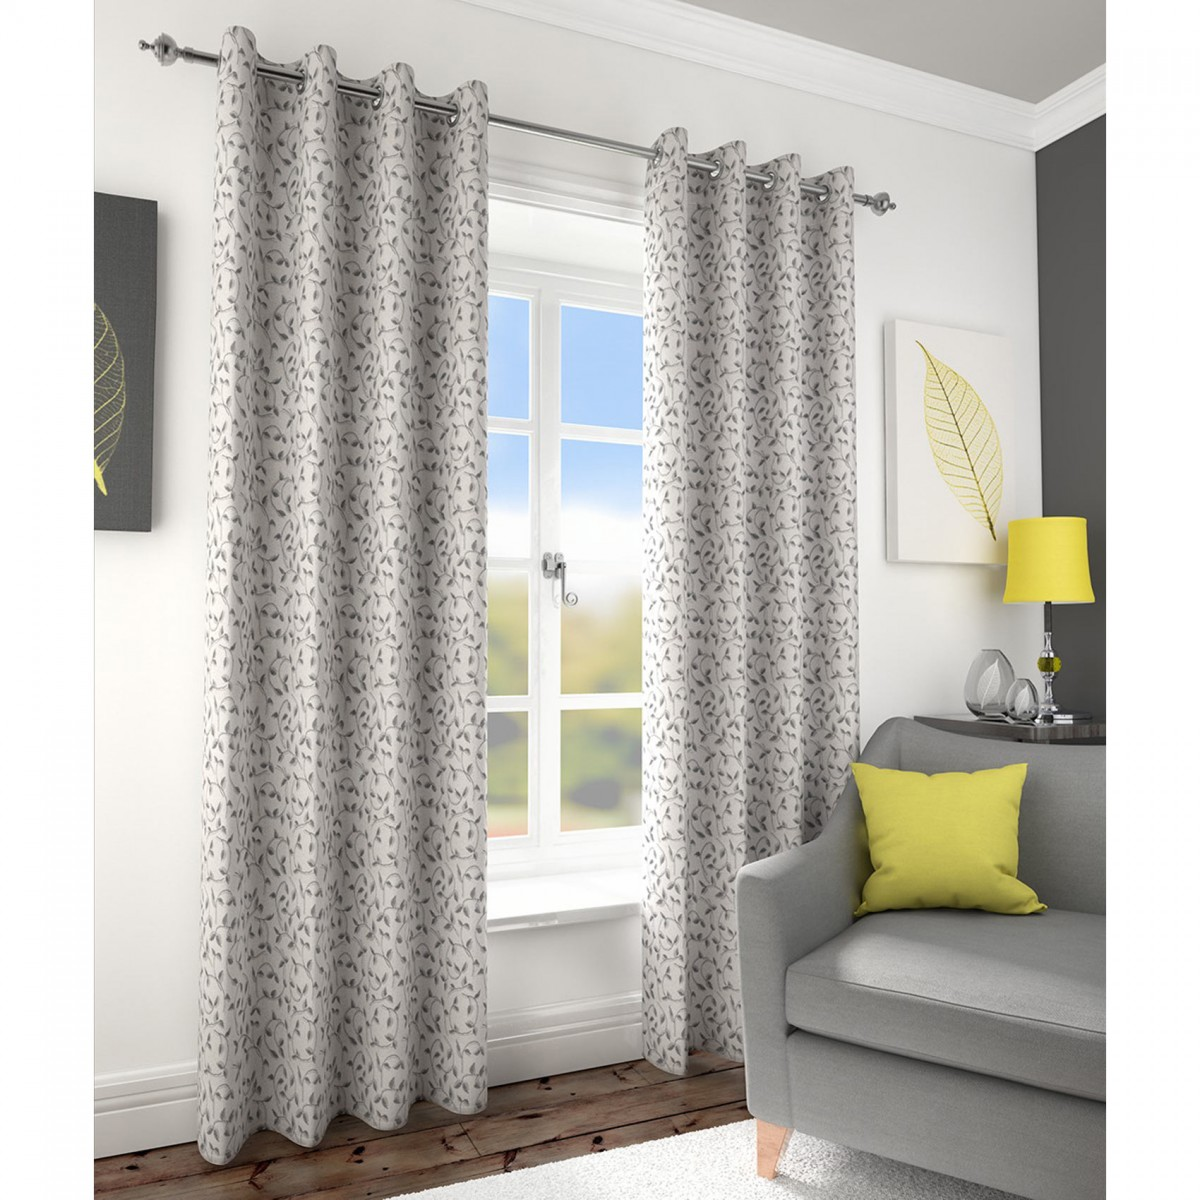 Folia Jacquard Lined Eyelet Curtains - Charcoal